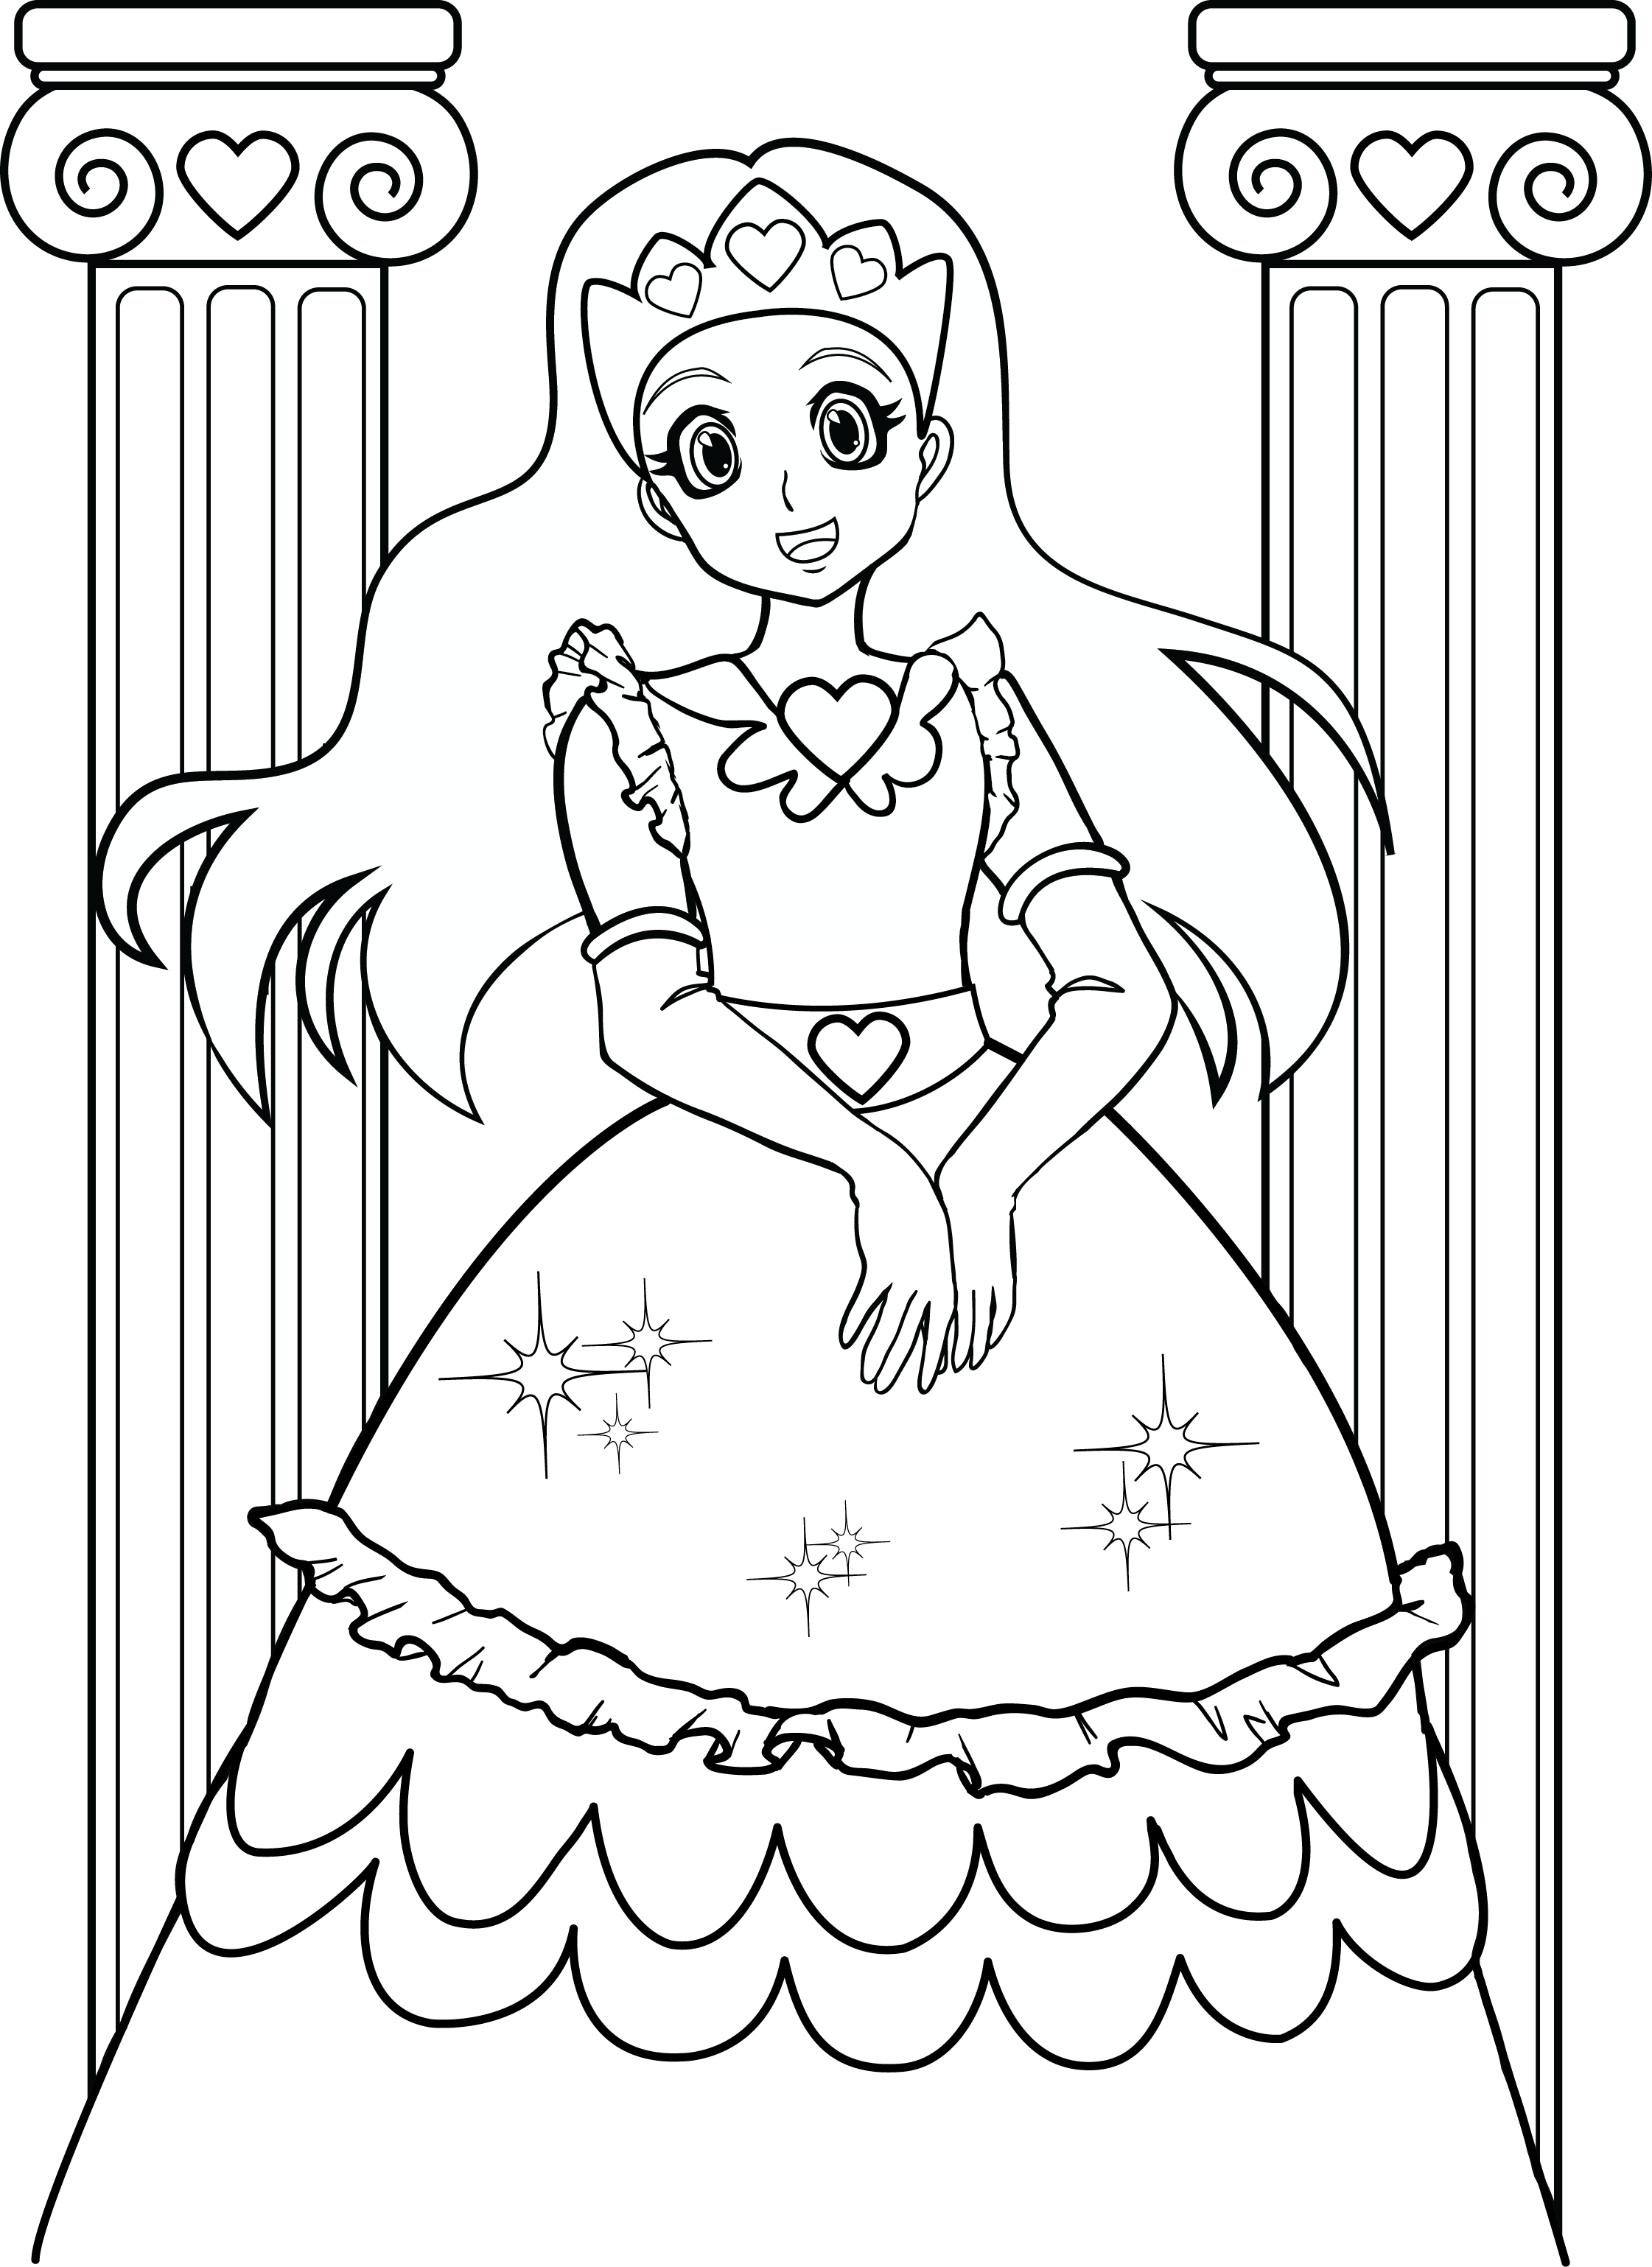 coloring pages for girls - Colouring For Kids